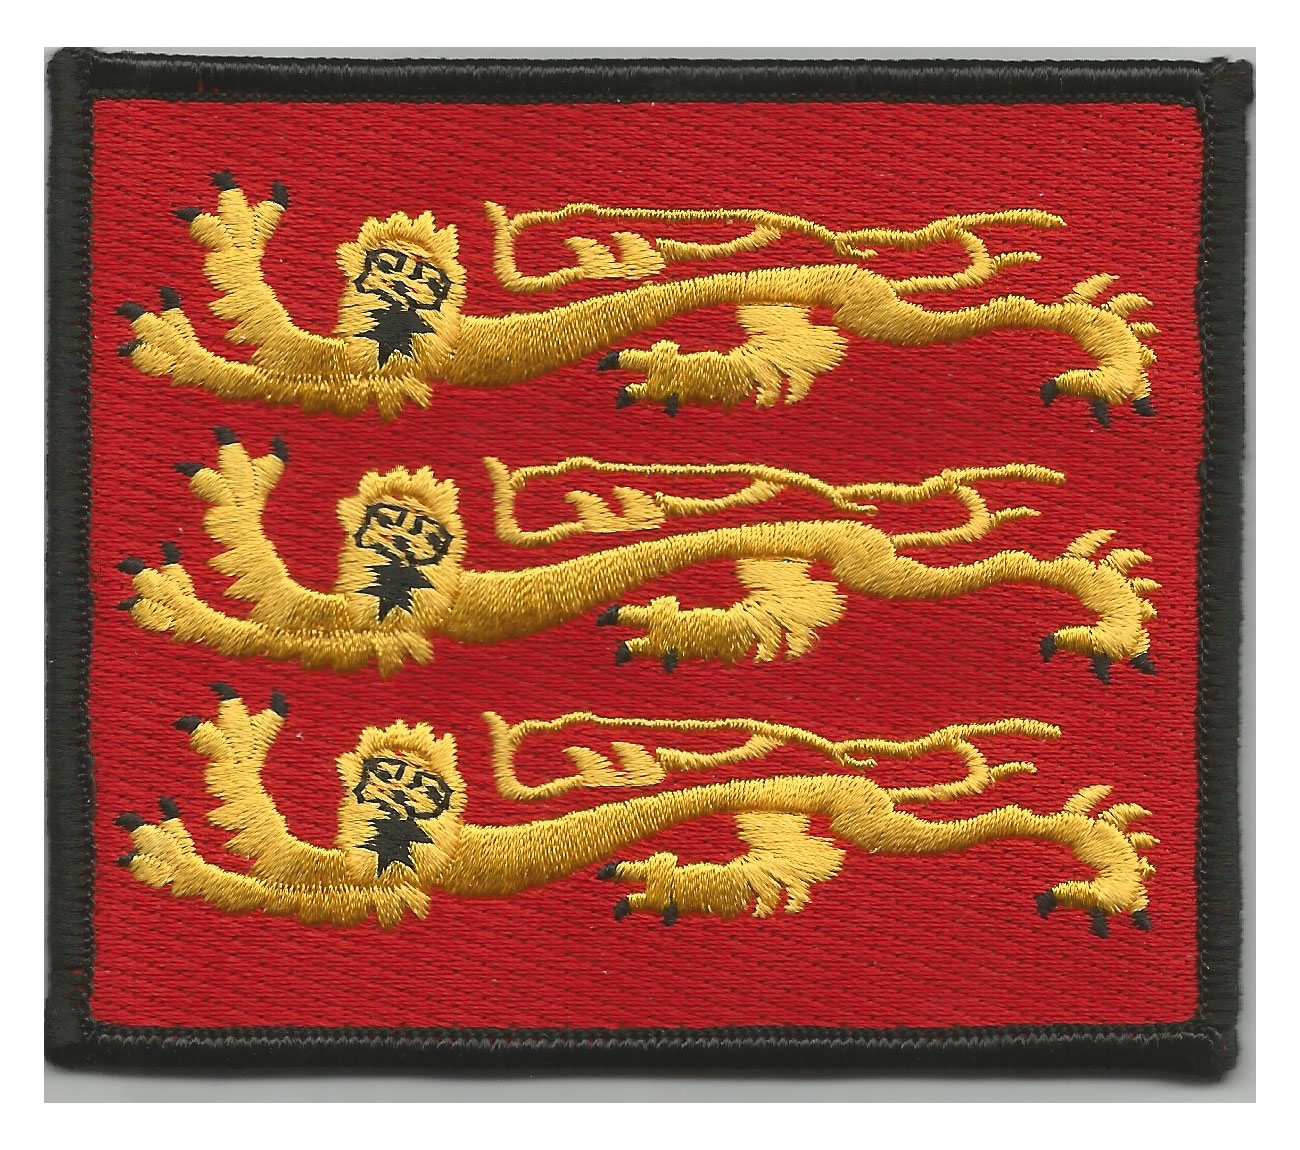 Three Lions embroidered patch